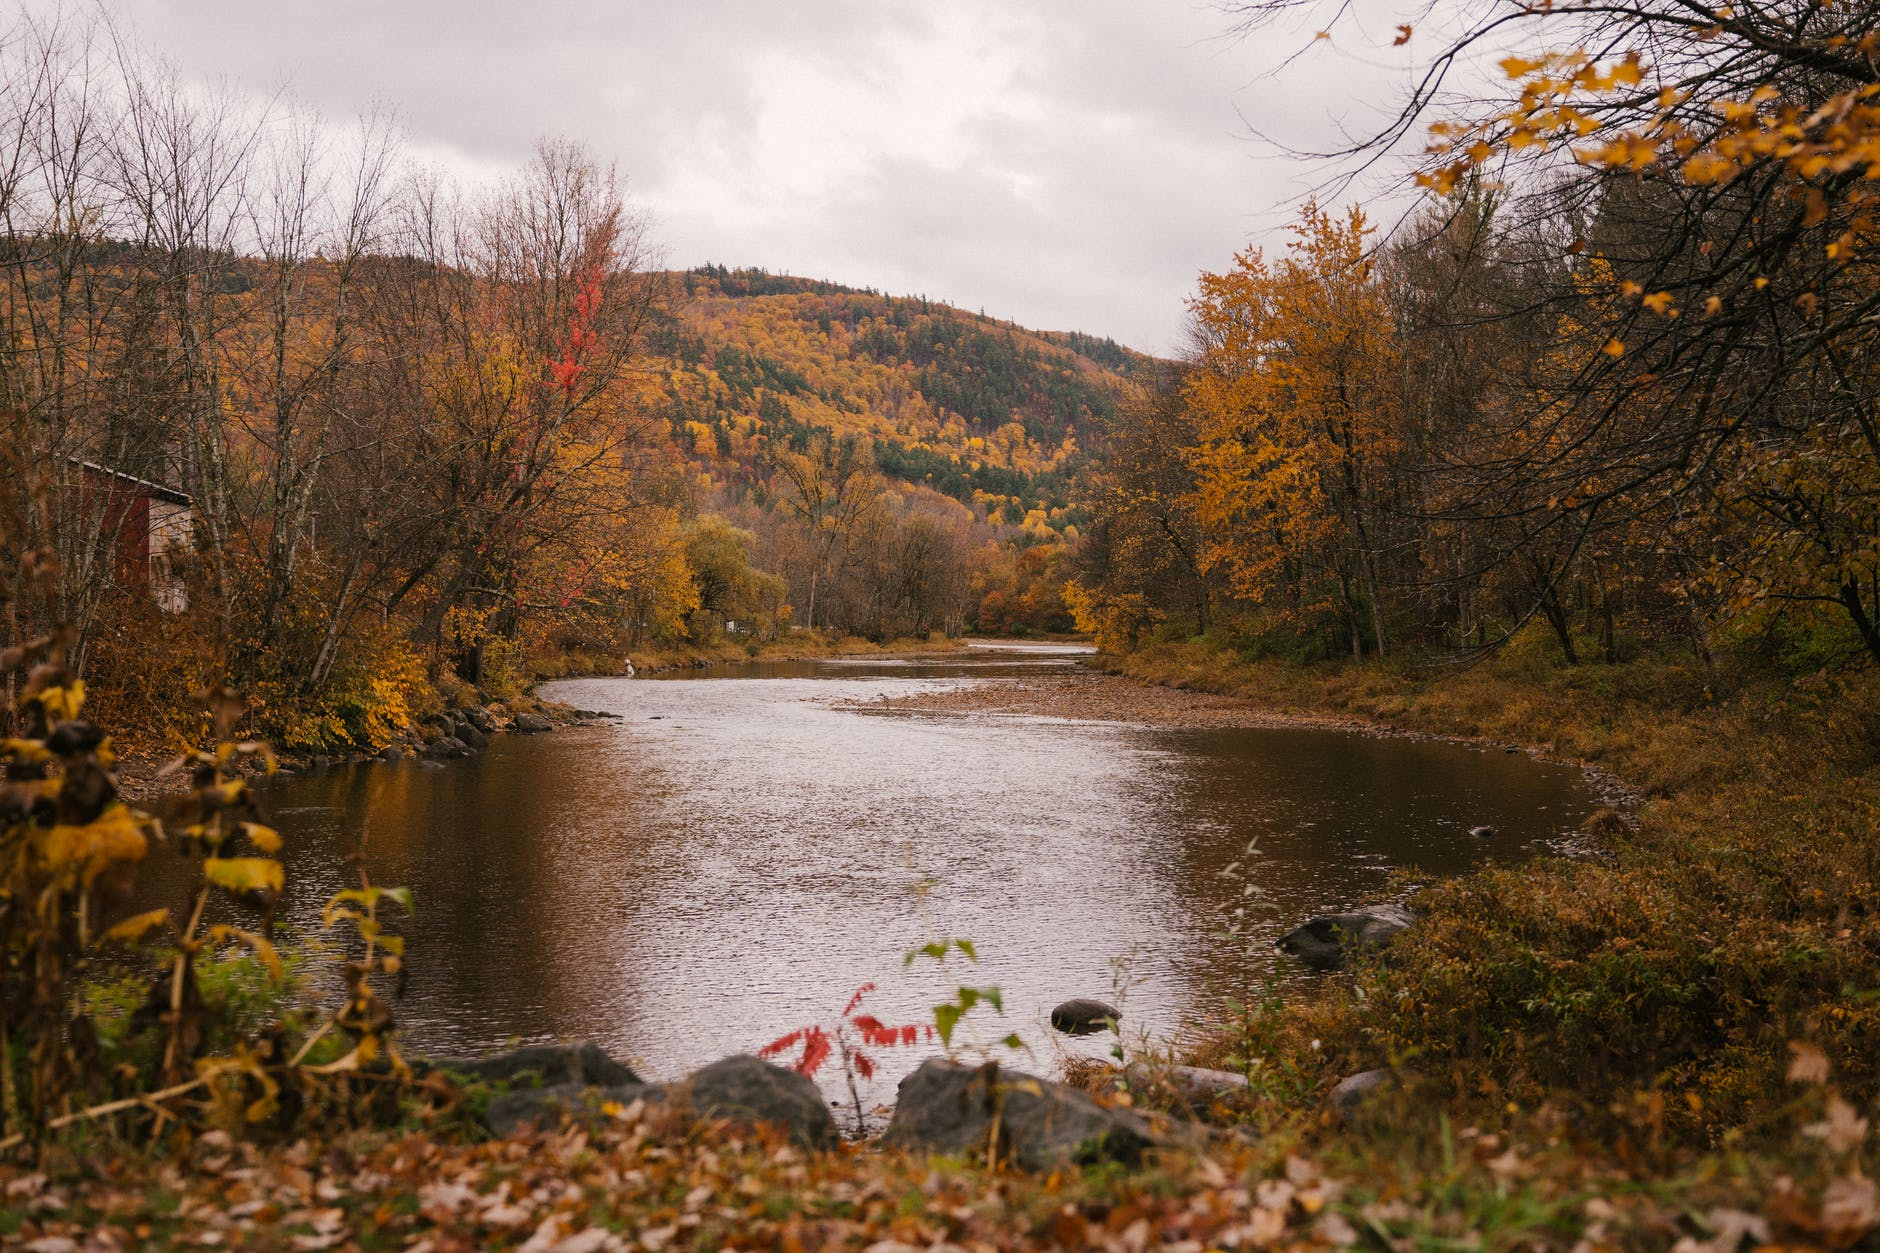 river among mountain and forest in autumn